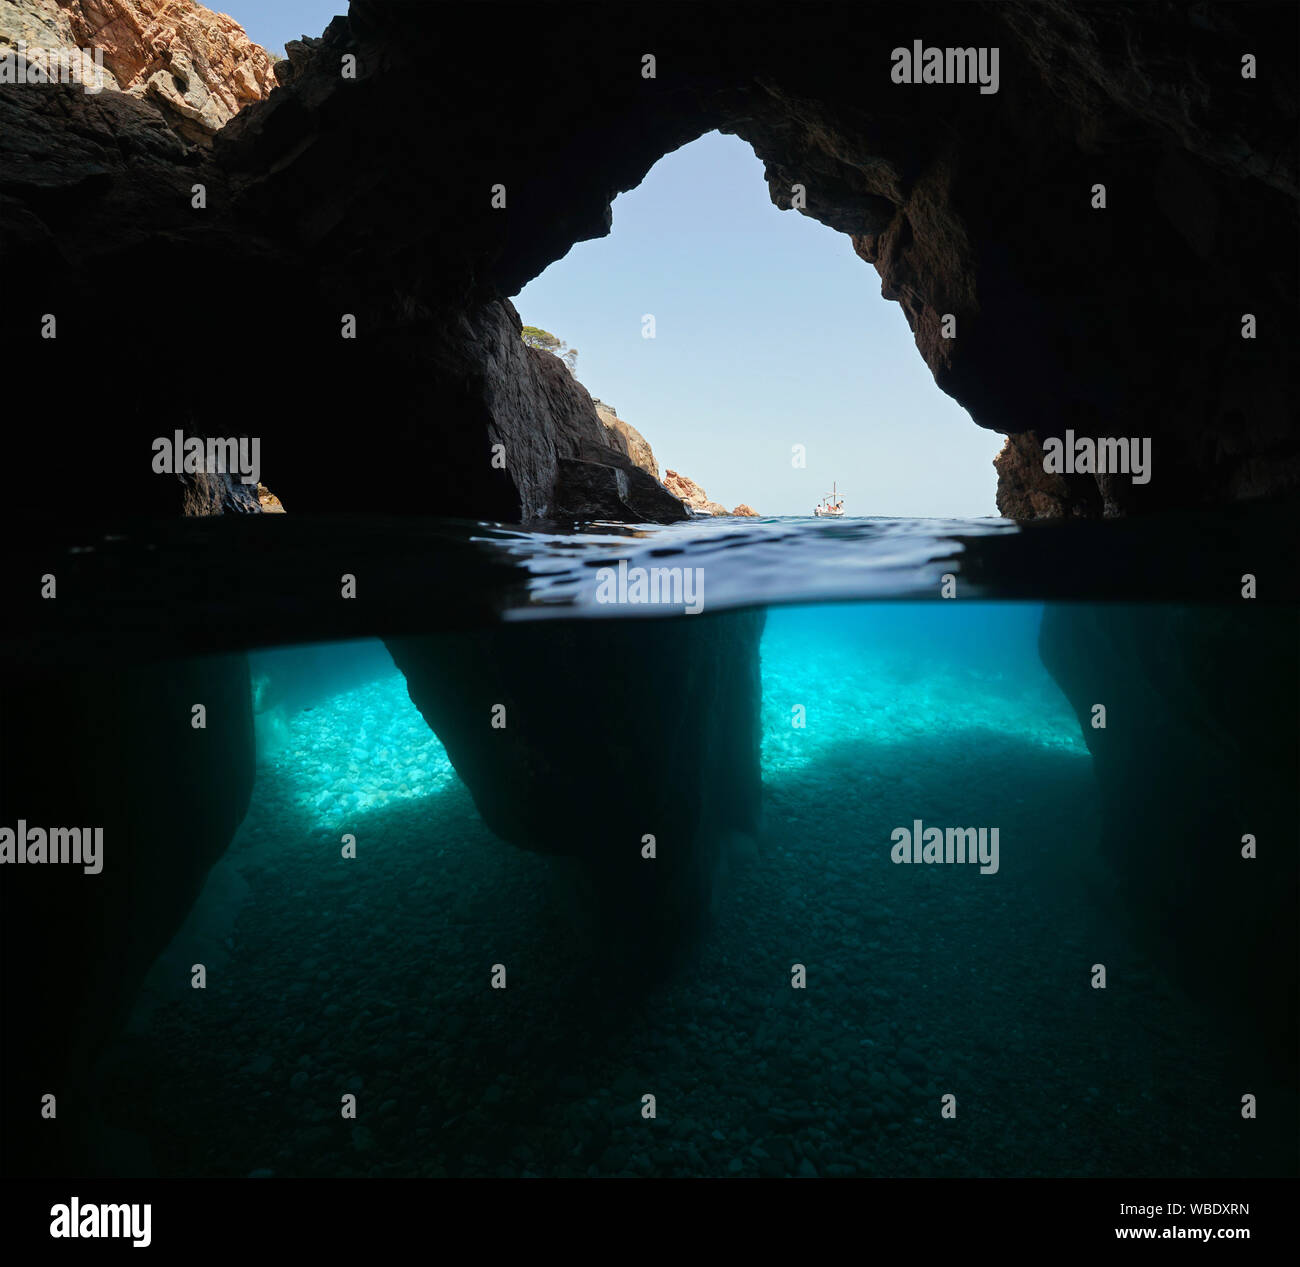 Over and under water inside a cave with several openings on the sea shore, Spain, Mediterranean, Costa Brava, Catalonia, Calella de Palafrugell Stock Photo